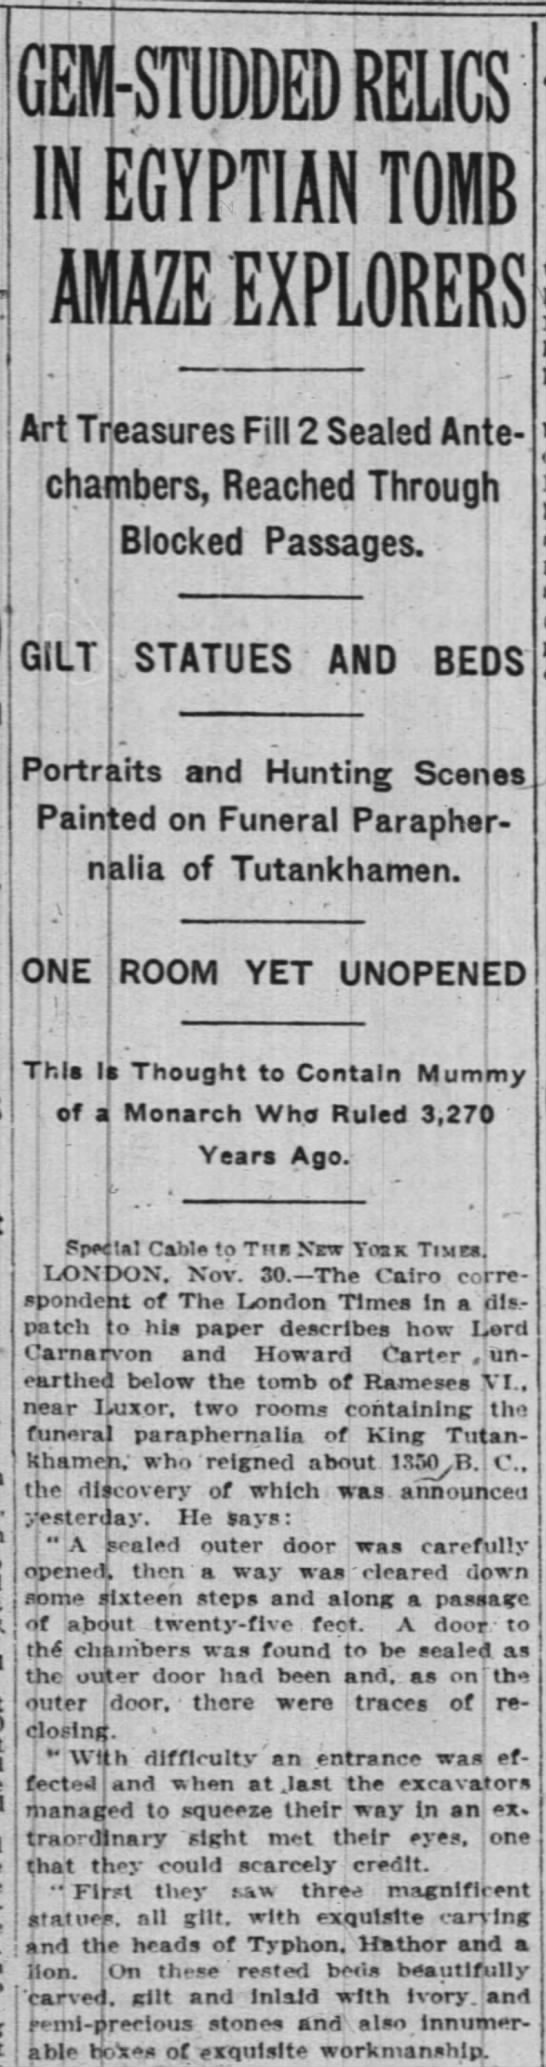 Today in 1922 : News of the discovery of the treasures of Old King Tut breaks out all over the world -